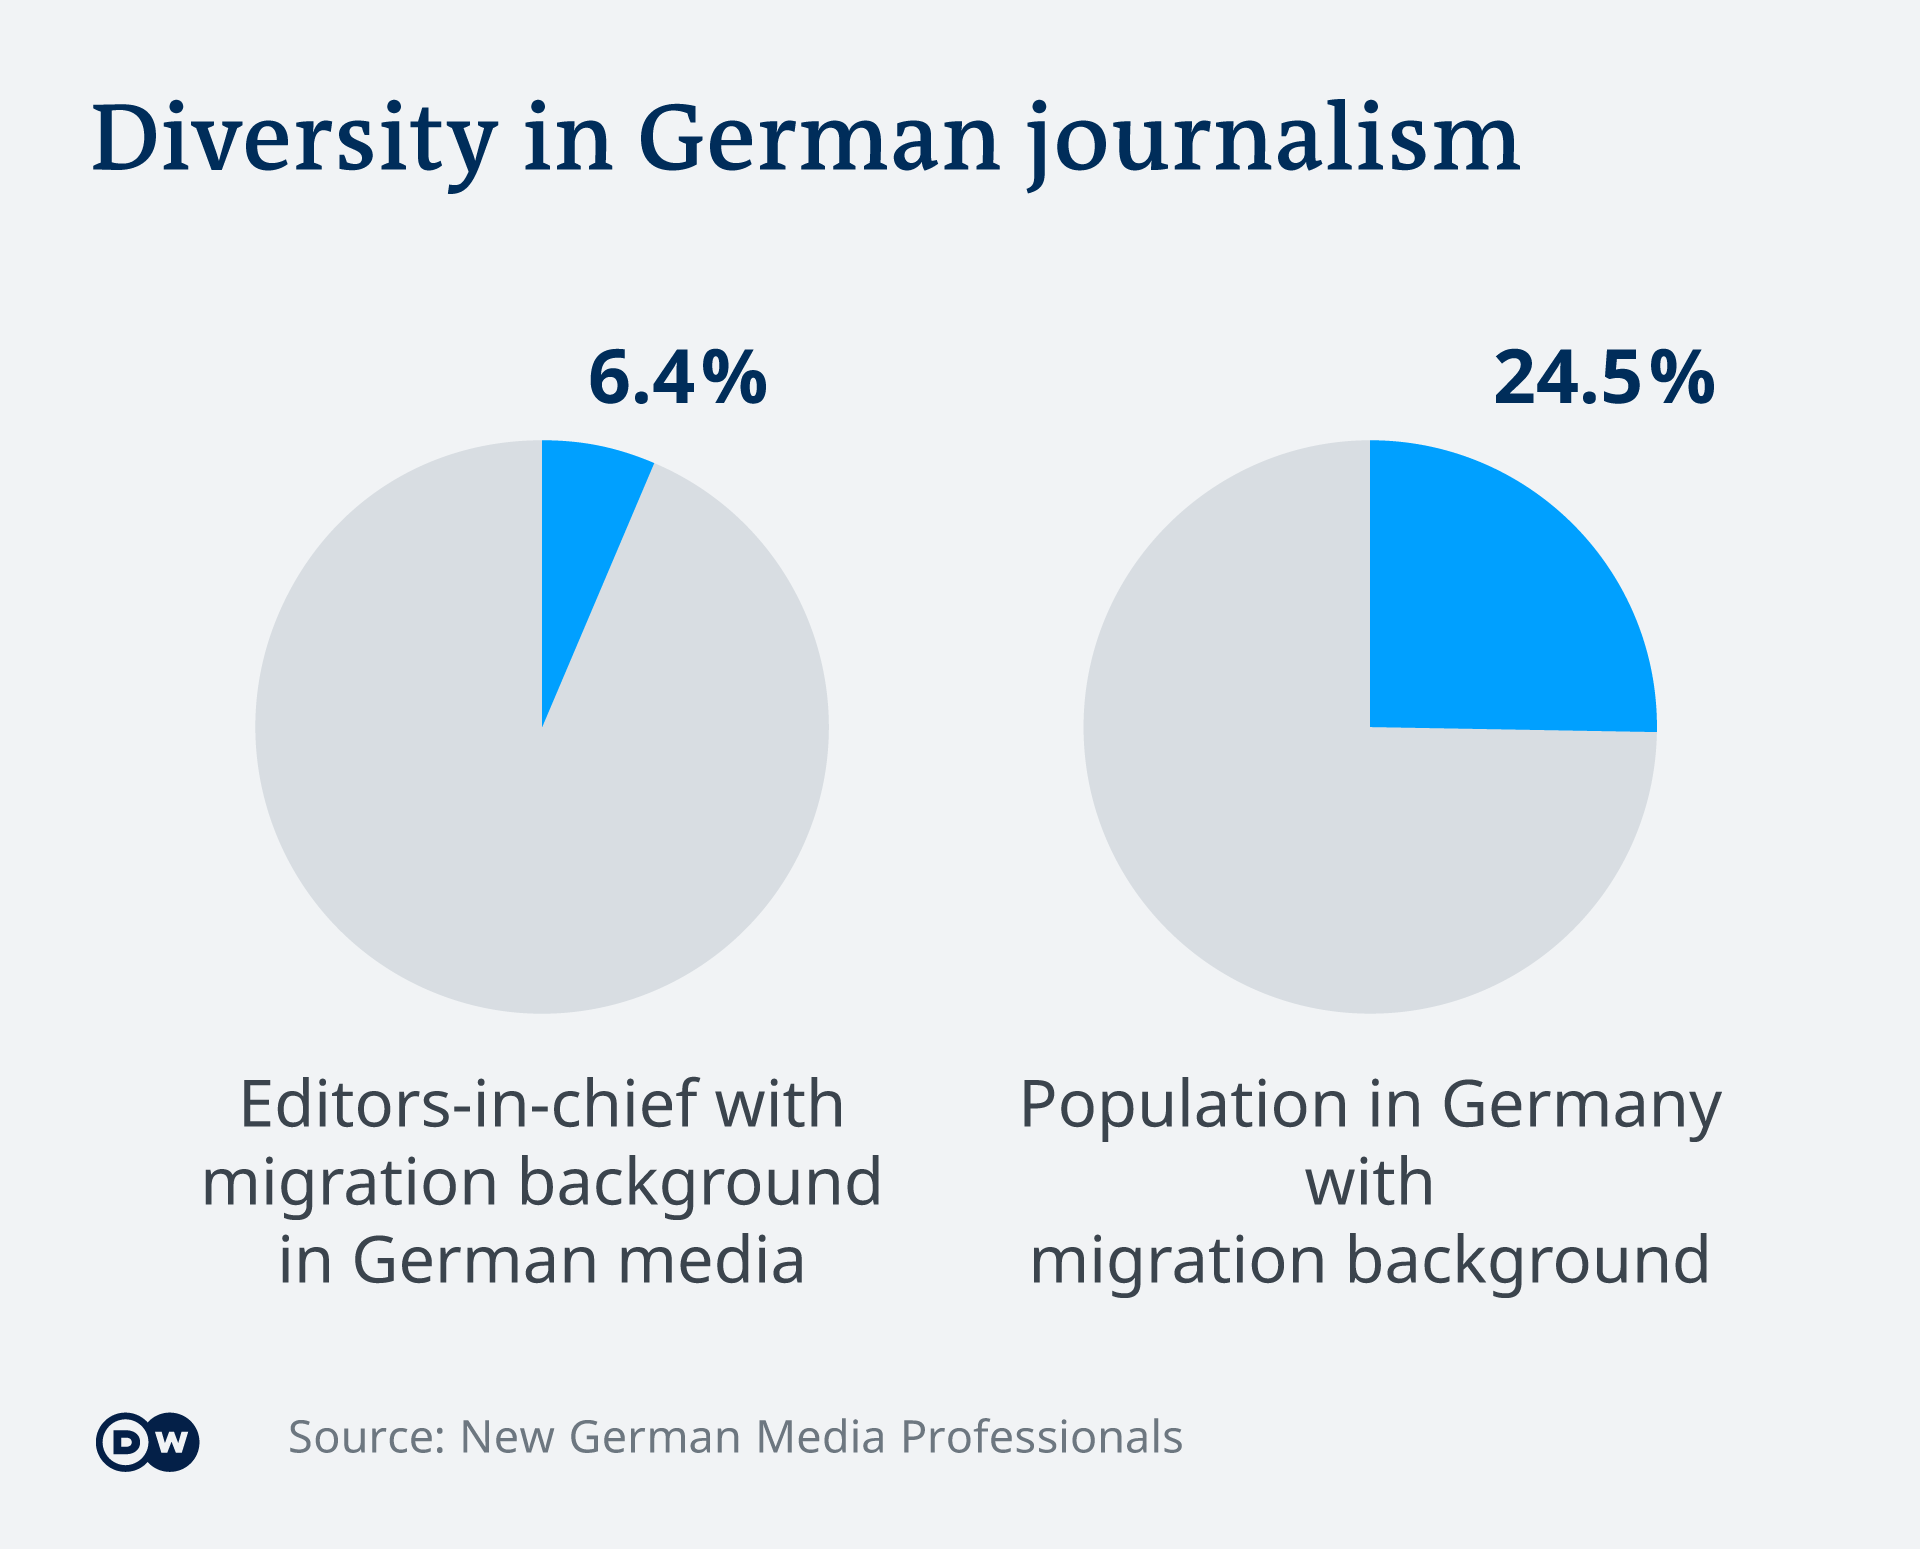 An infographic on diversity in German journalism